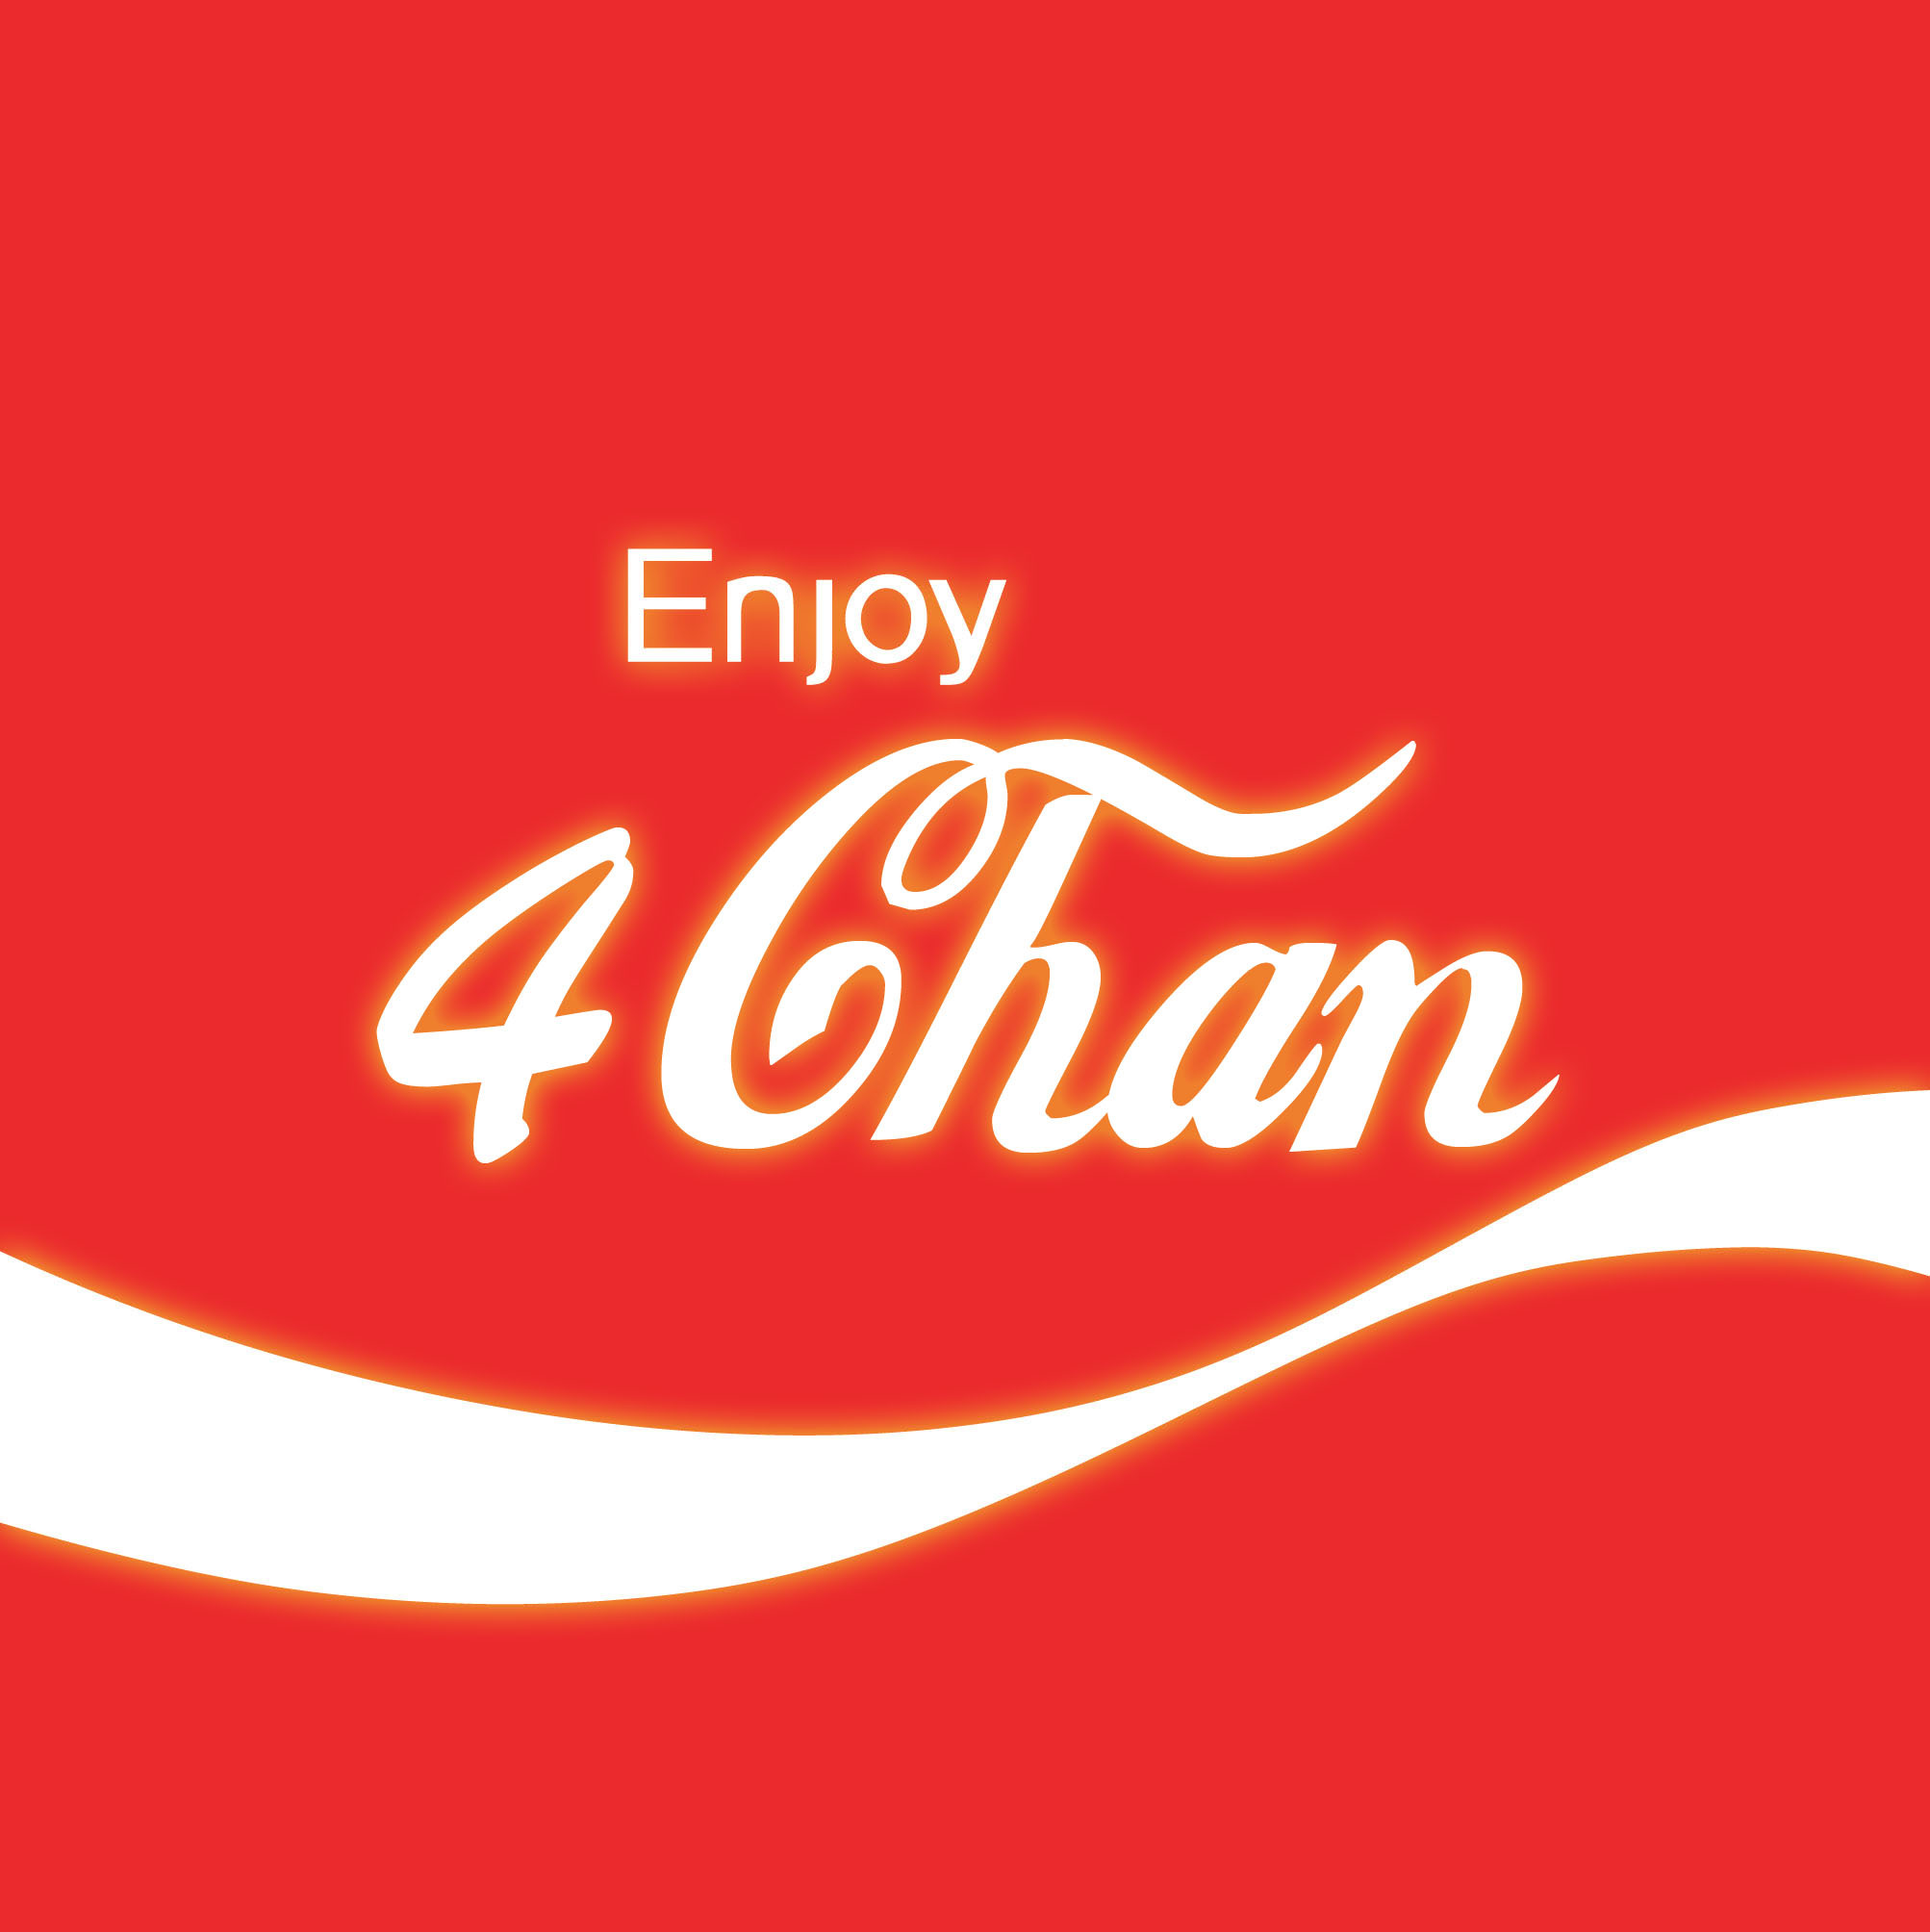 coca-cola logos enjoy 4chan HD Wallpaper